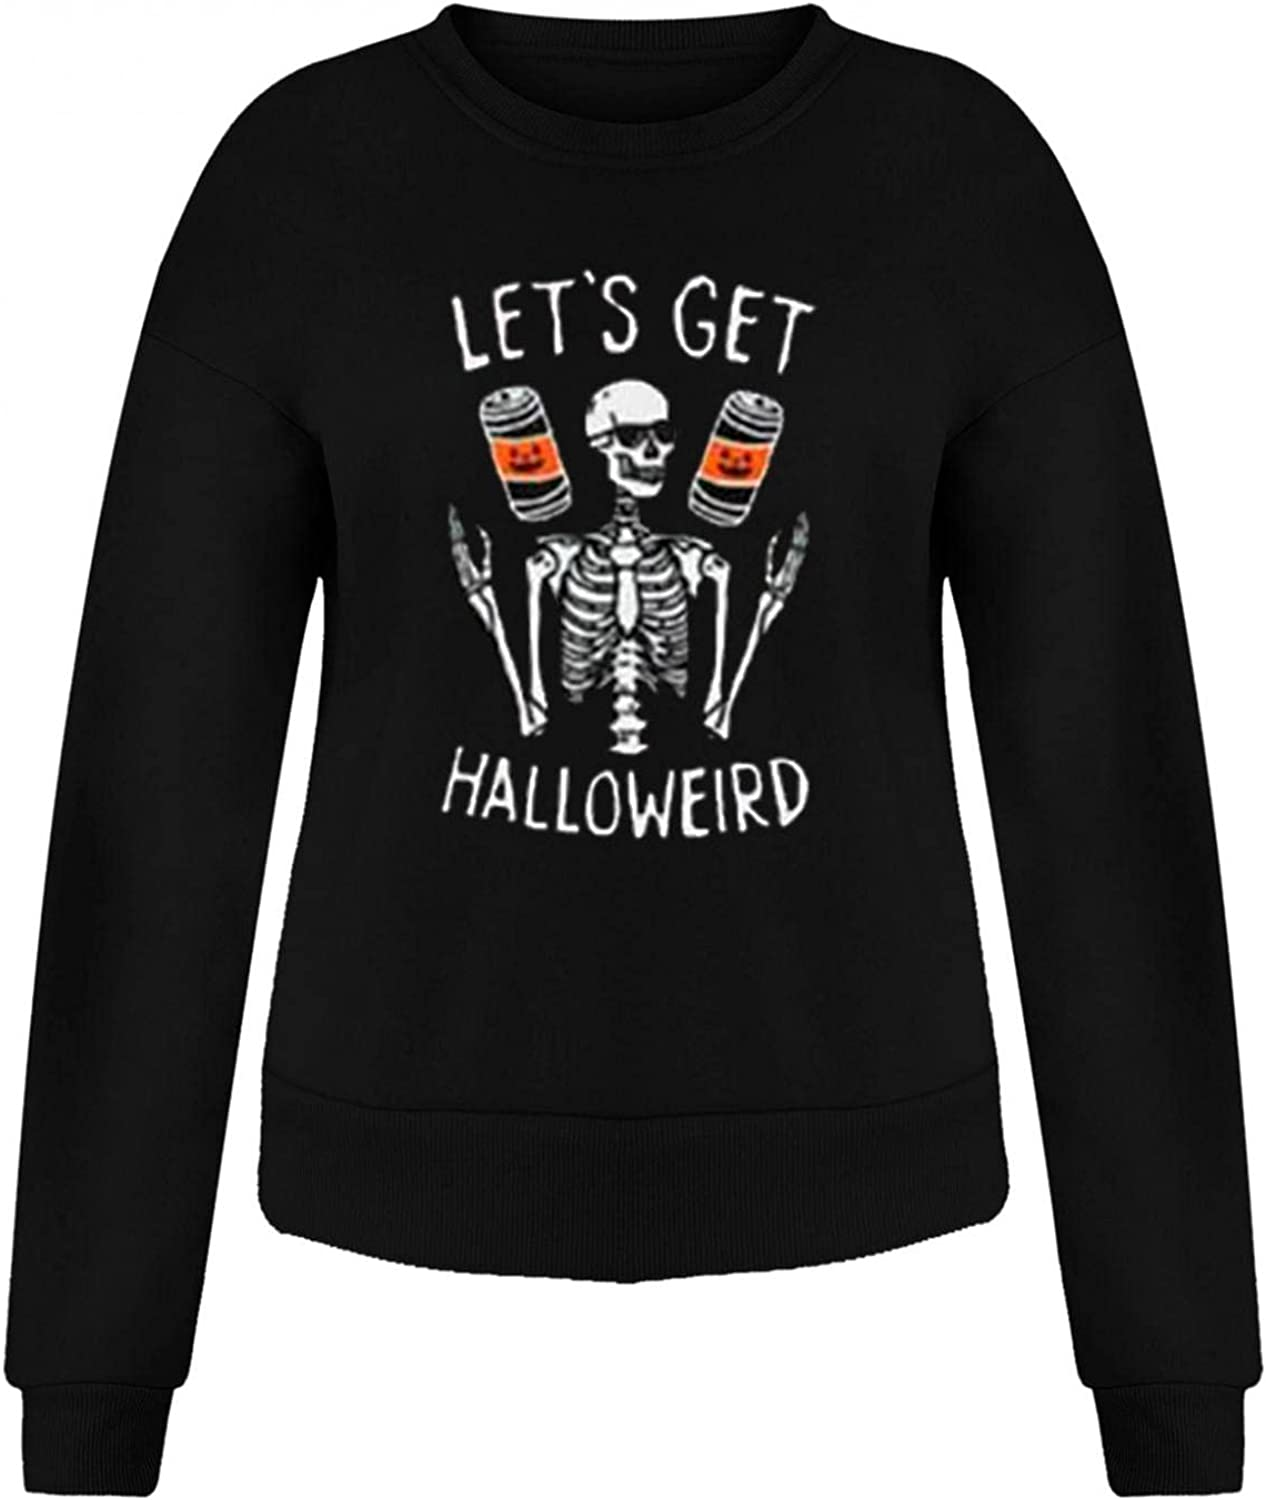 Halloween Graphic Sweatshirts for Women Fashion Crewneck Loose Fit Casual Long Sleeve Cute Pumpkin Pullover Sweaters